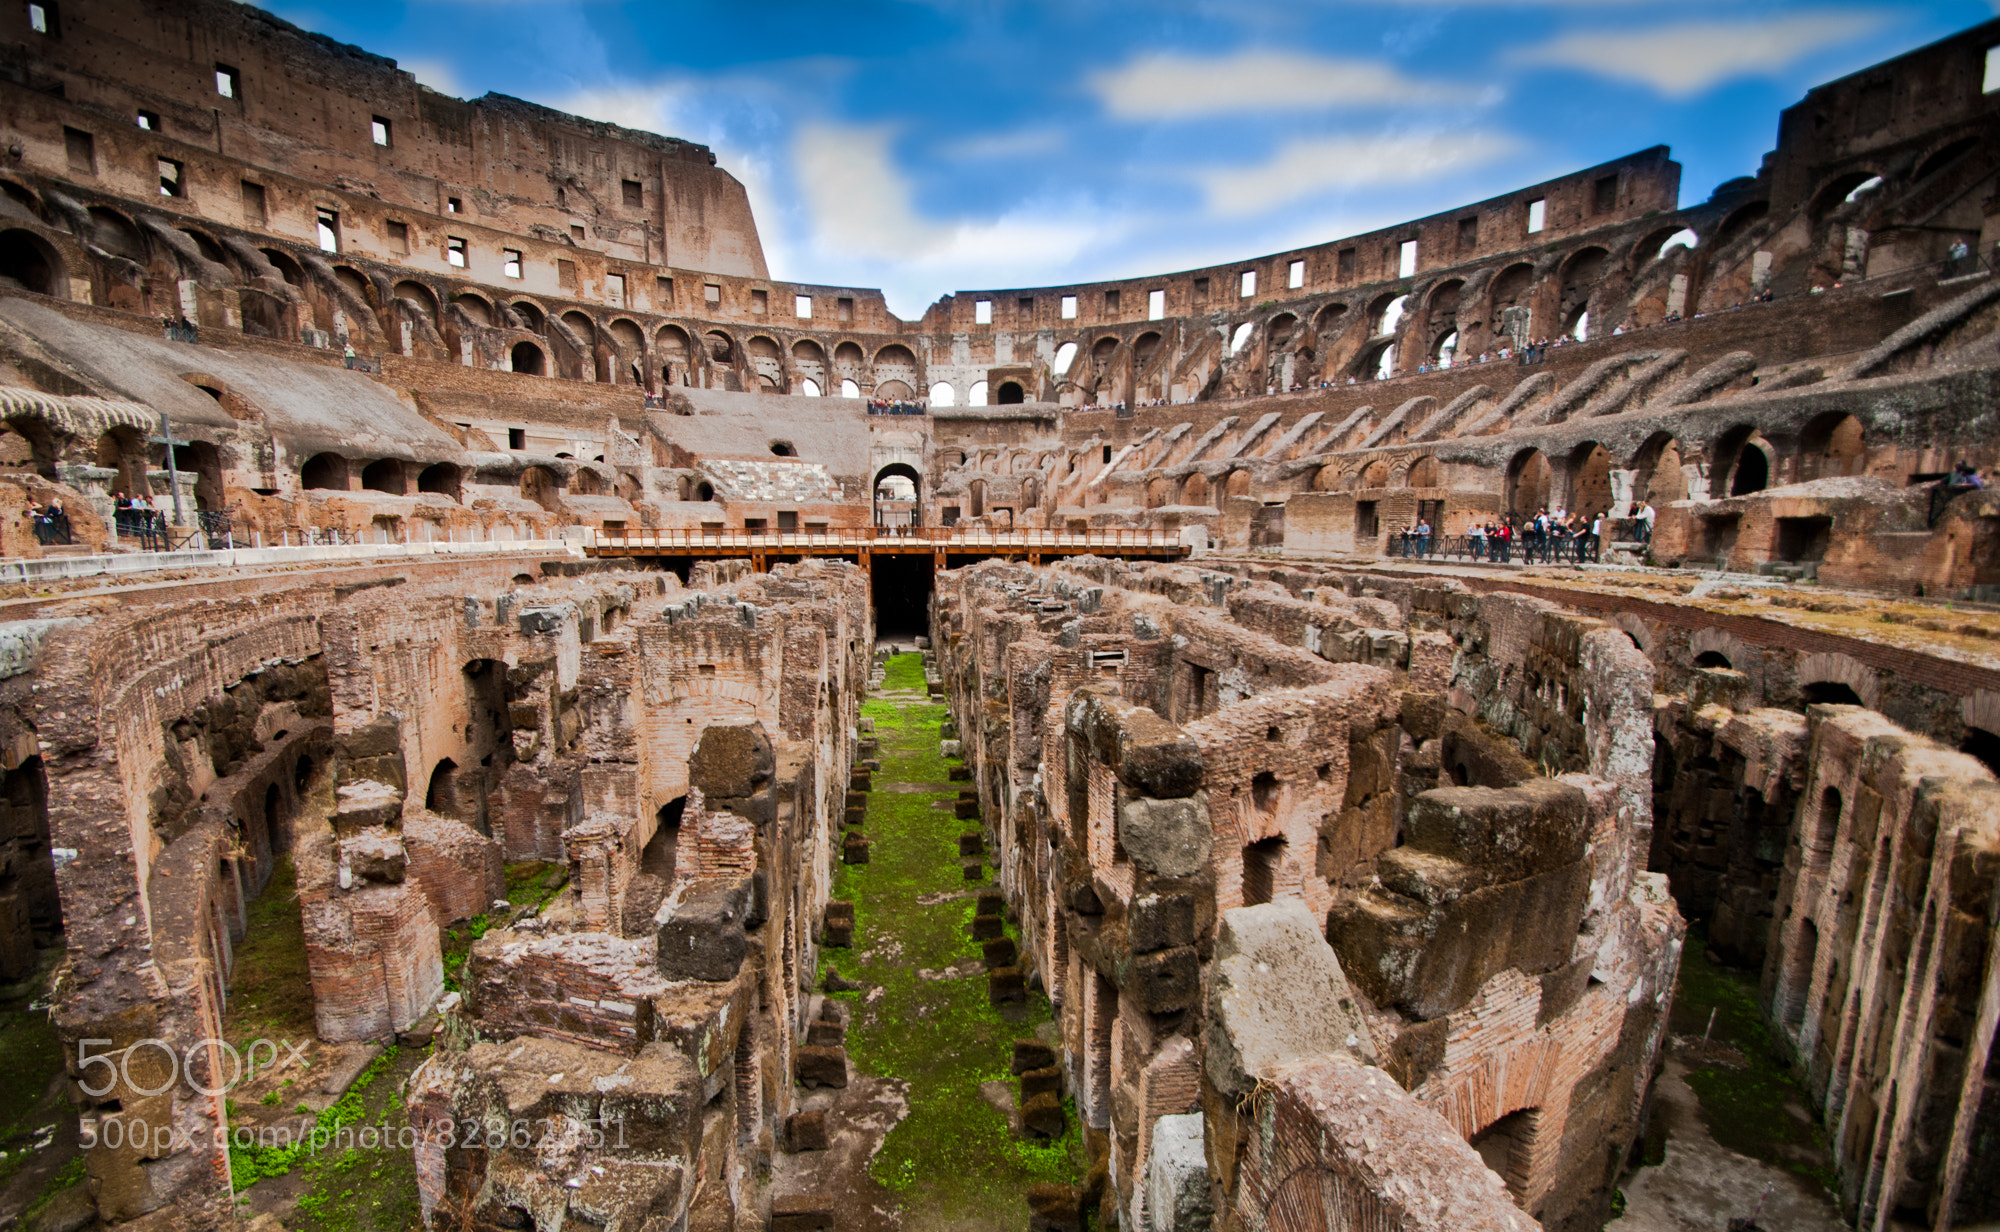 Inside the Colosseum of Rome : pics